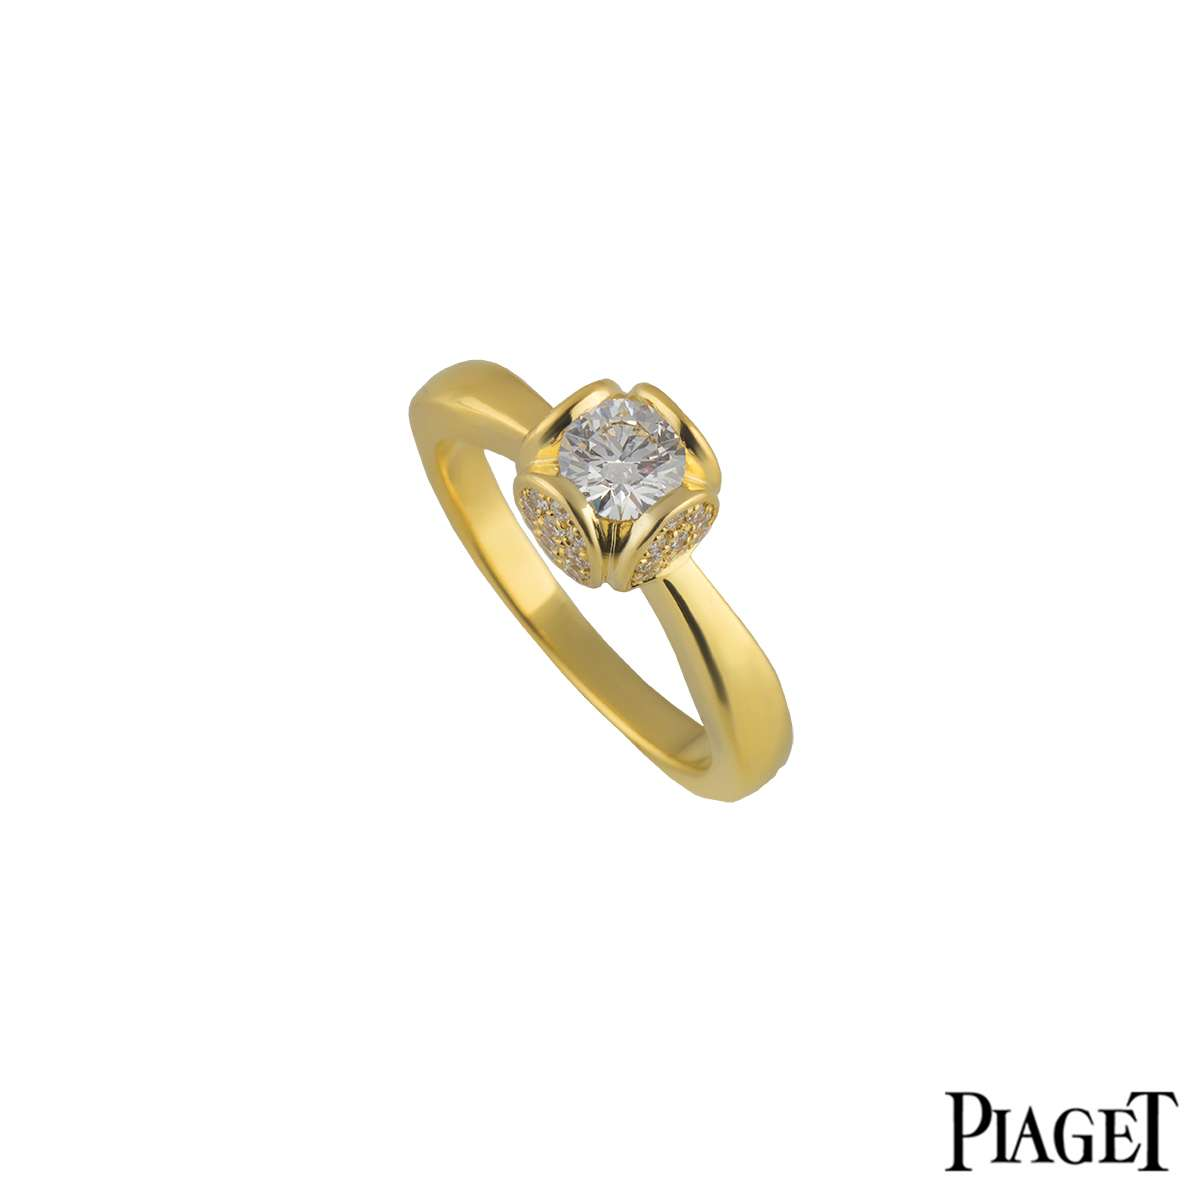 Piaget 18k Yellow Gold Engagement Ring